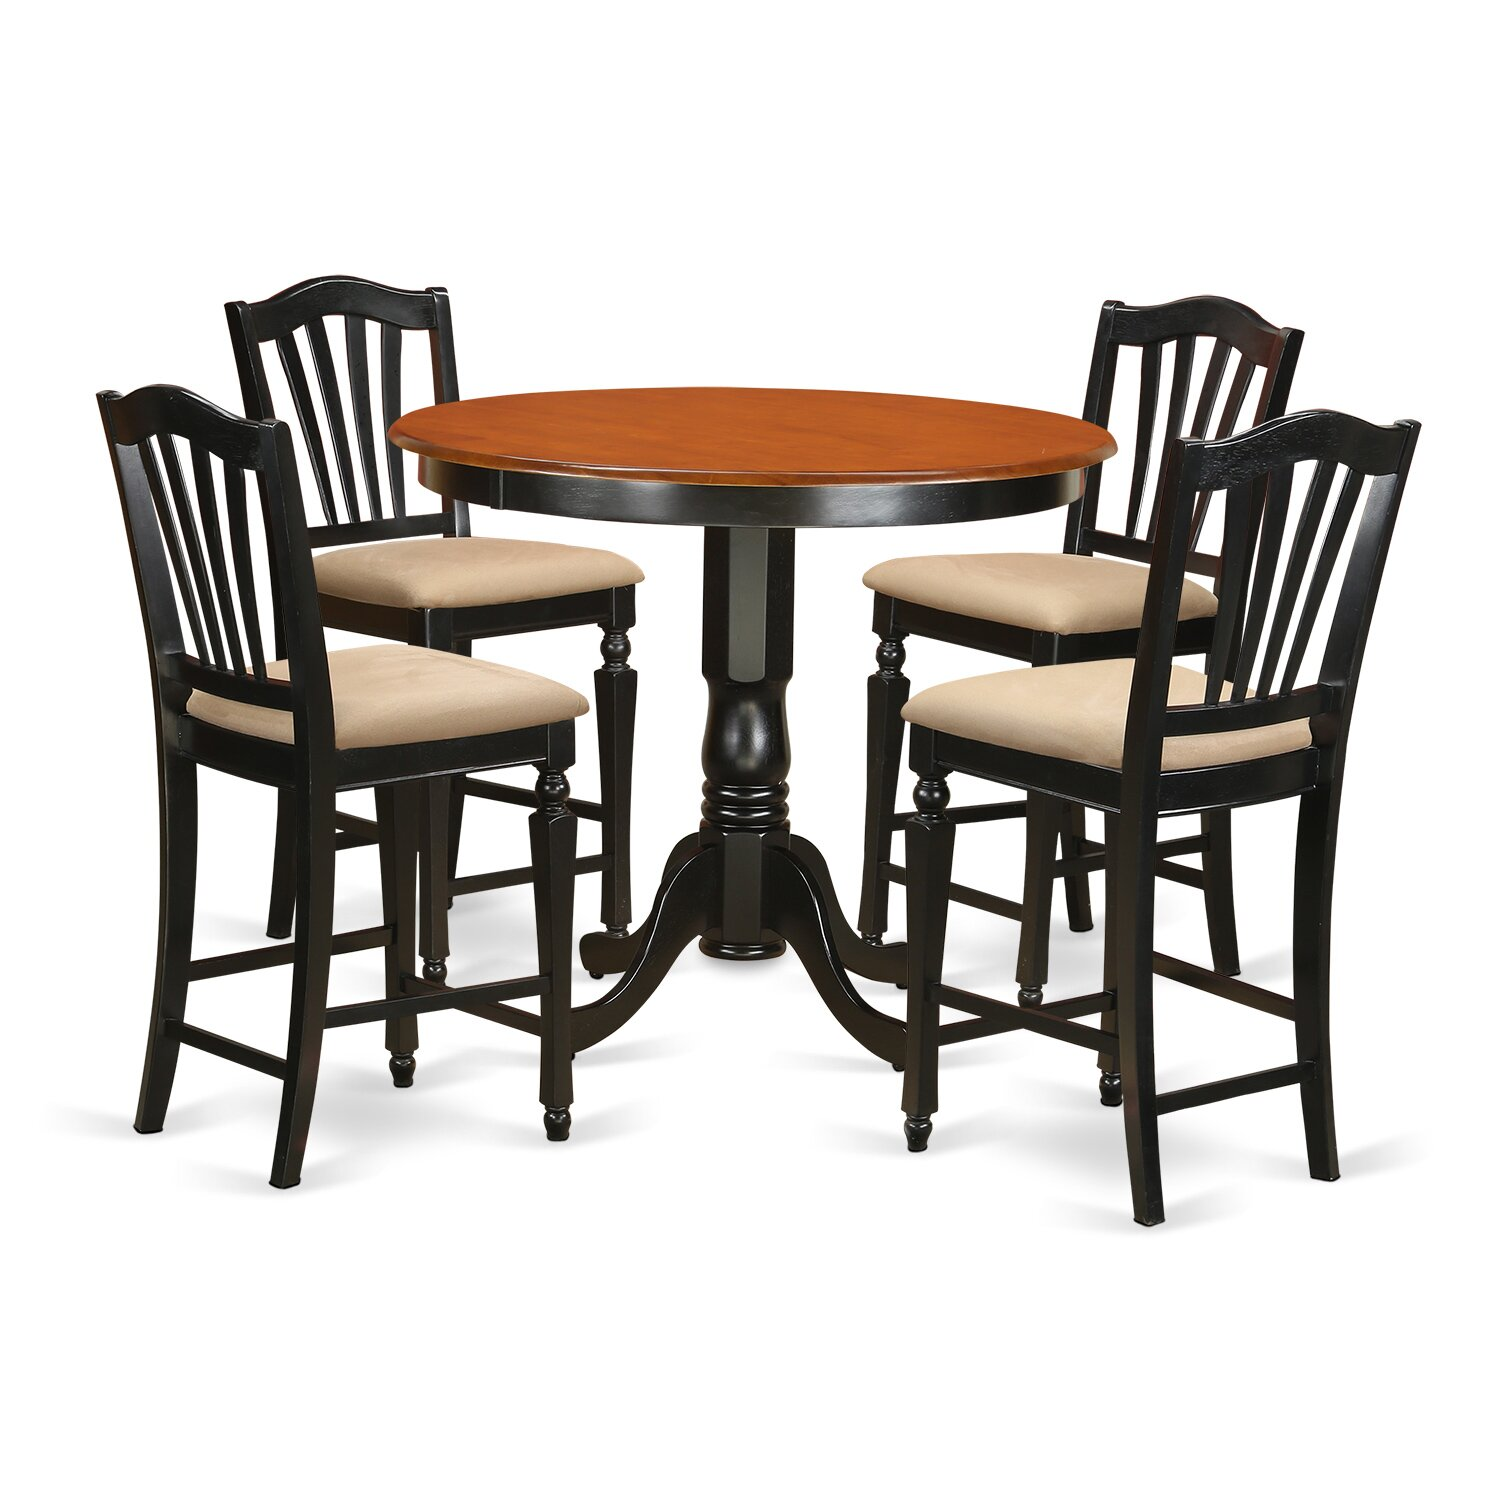 East West Trenton 5 Piece Counter Height Pub Table Set  : 5 PC Counter Height Pub Set High Top Table and 4 Counter Height Stool TRCH5 C from www.wayfair.com size 1500 x 1500 jpeg 258kB